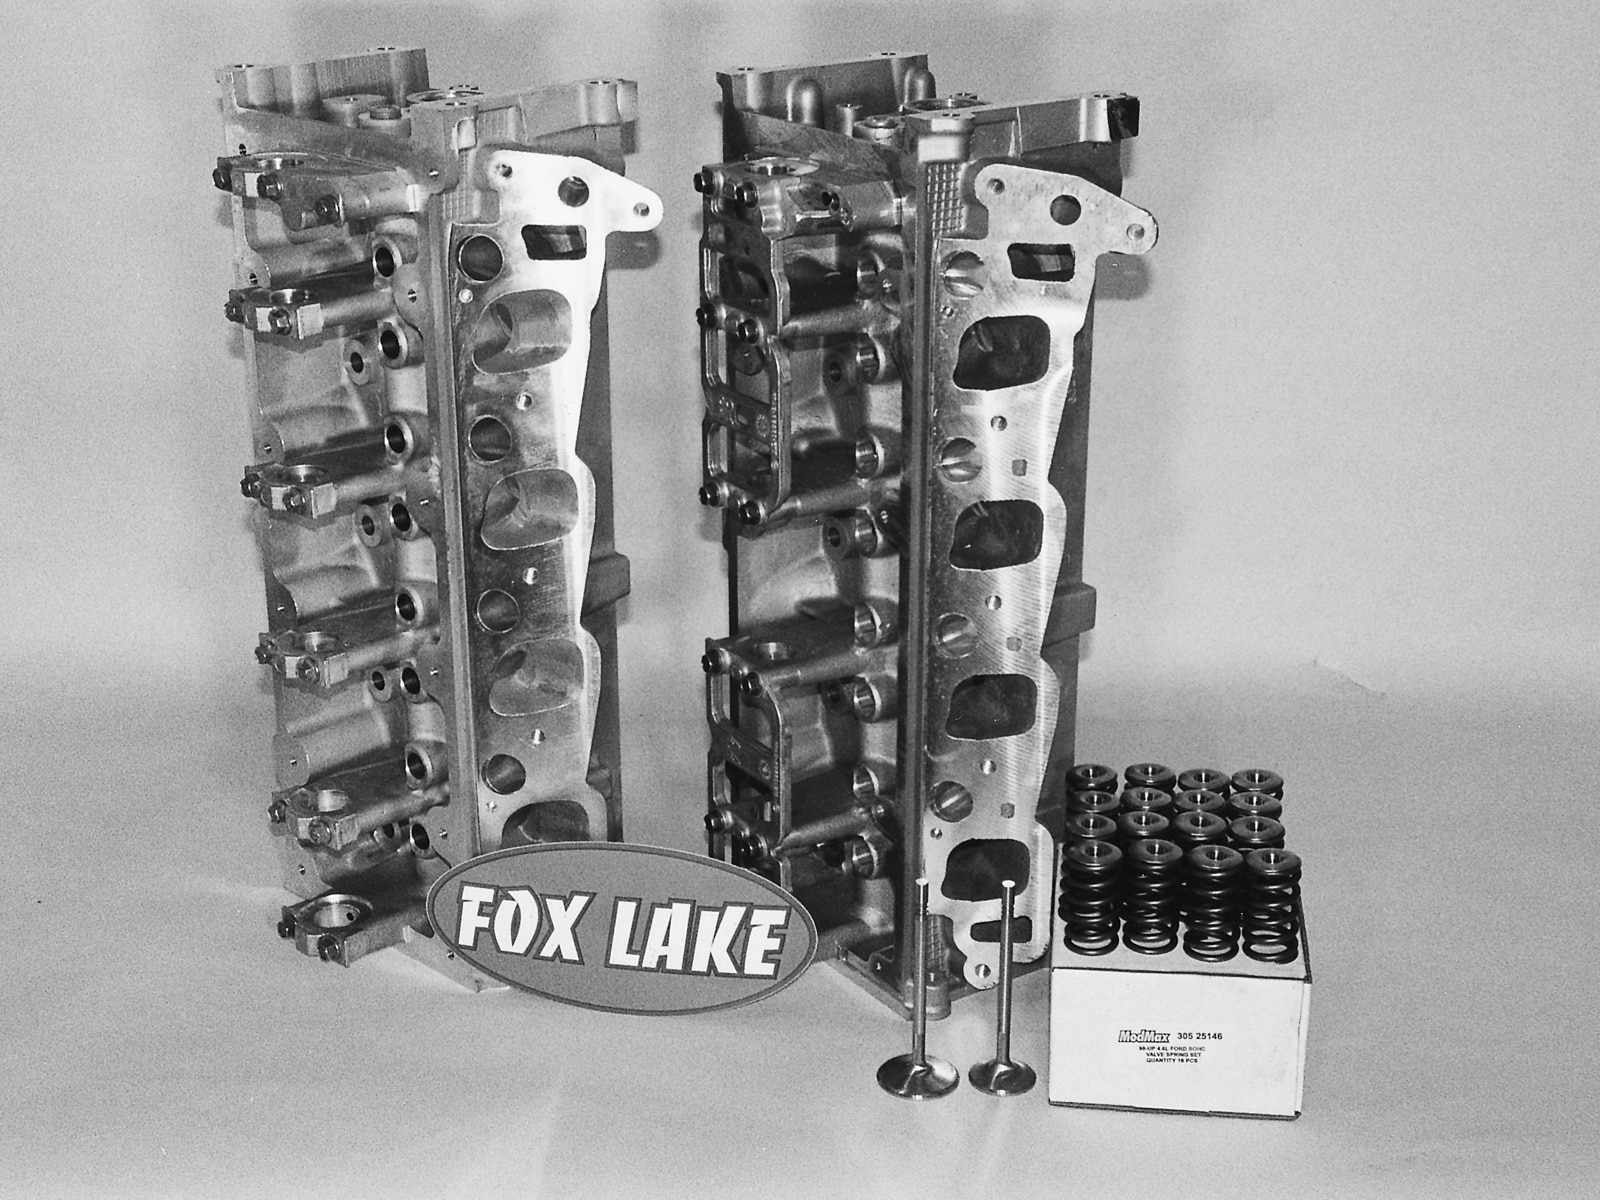 M5lp 0210 01  Ported Modular Heads Two Cam Cylinder Heads